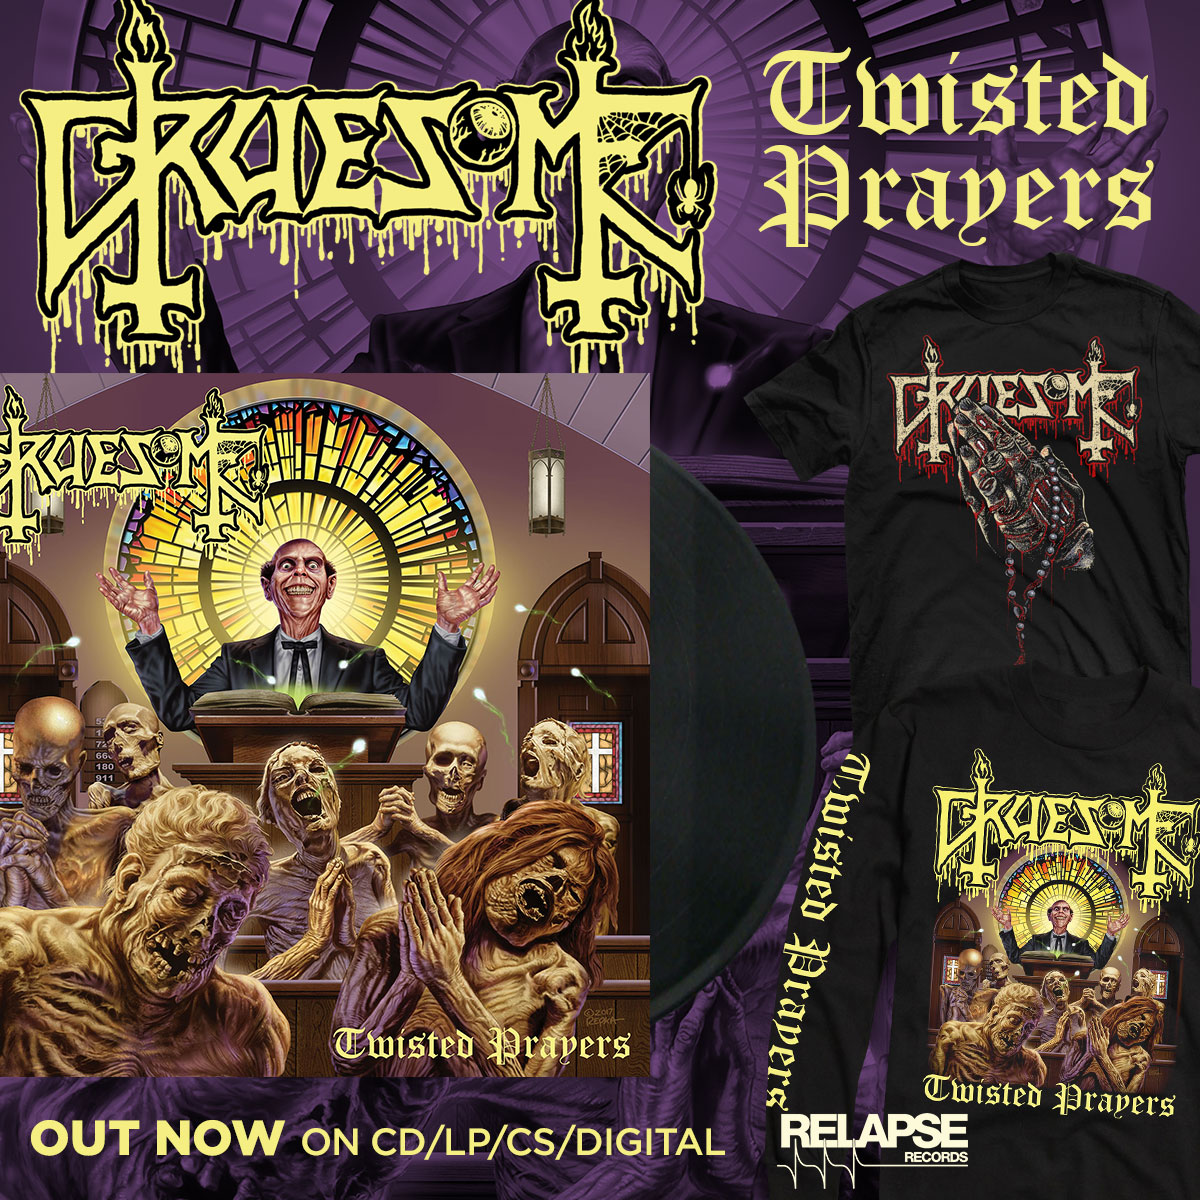 trappist-ancient-brewing-tactics-grindcore-out-now